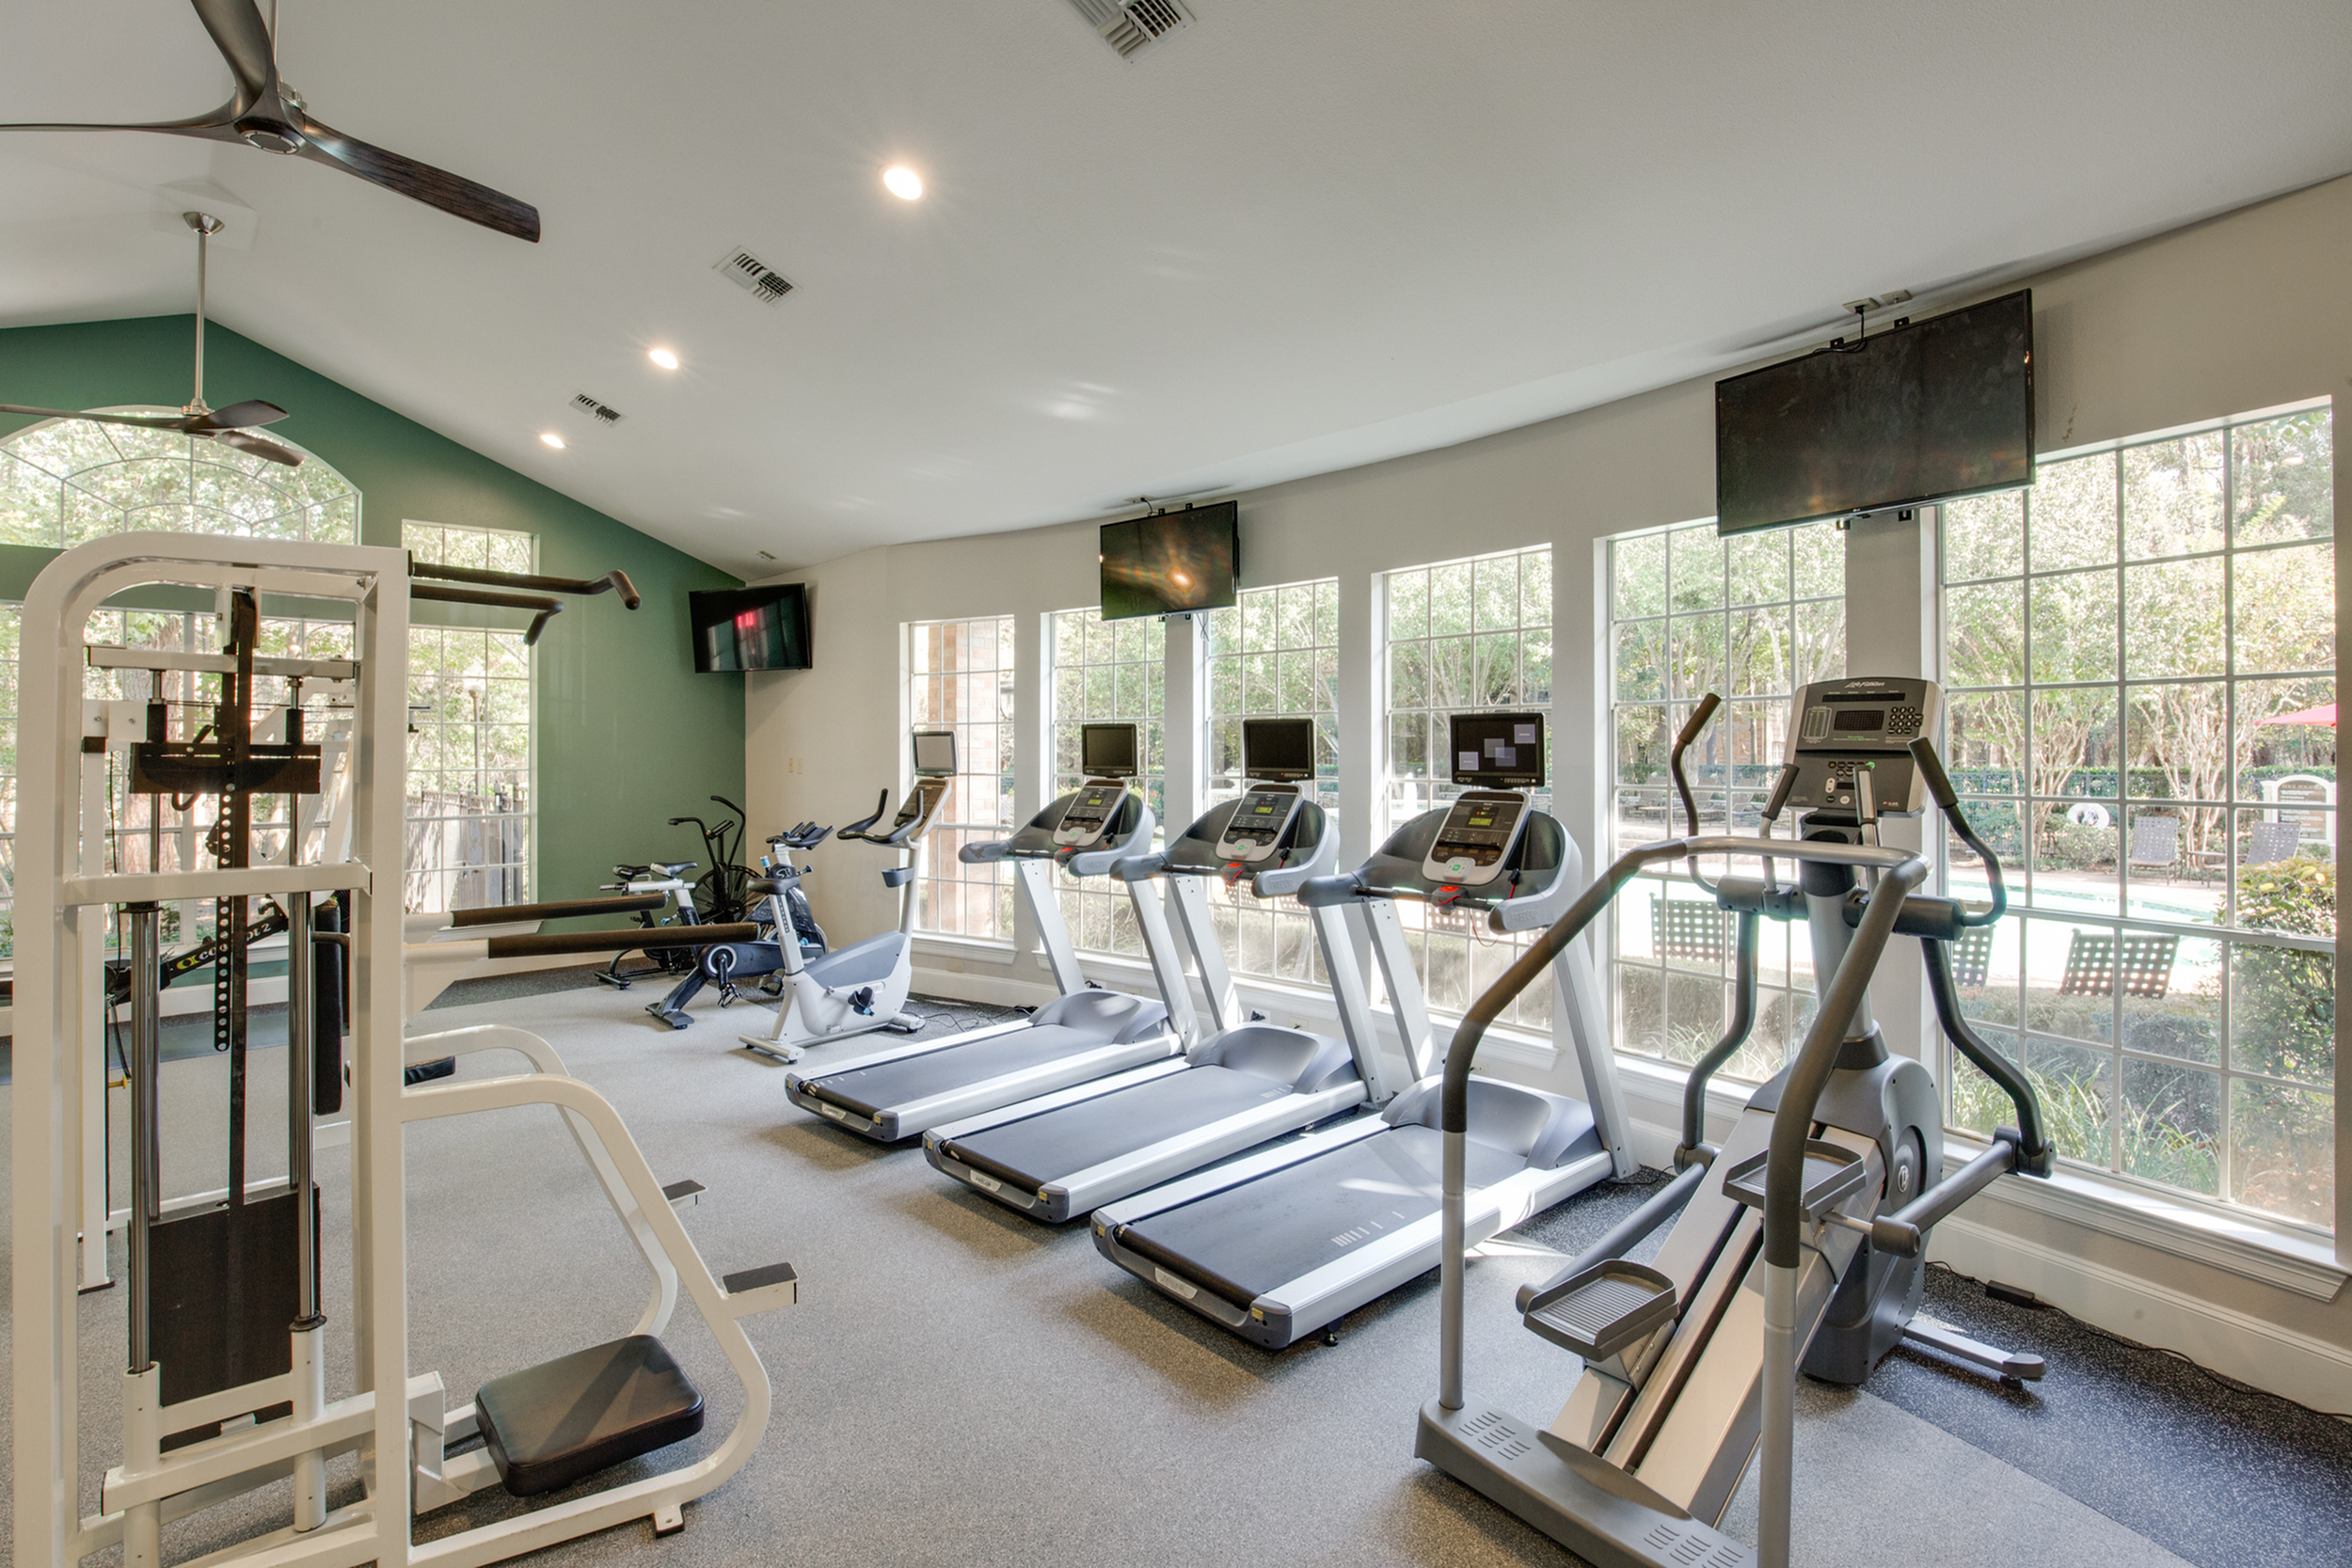 Image of Upgraded 24-Hour Fitness Club for Raveneaux